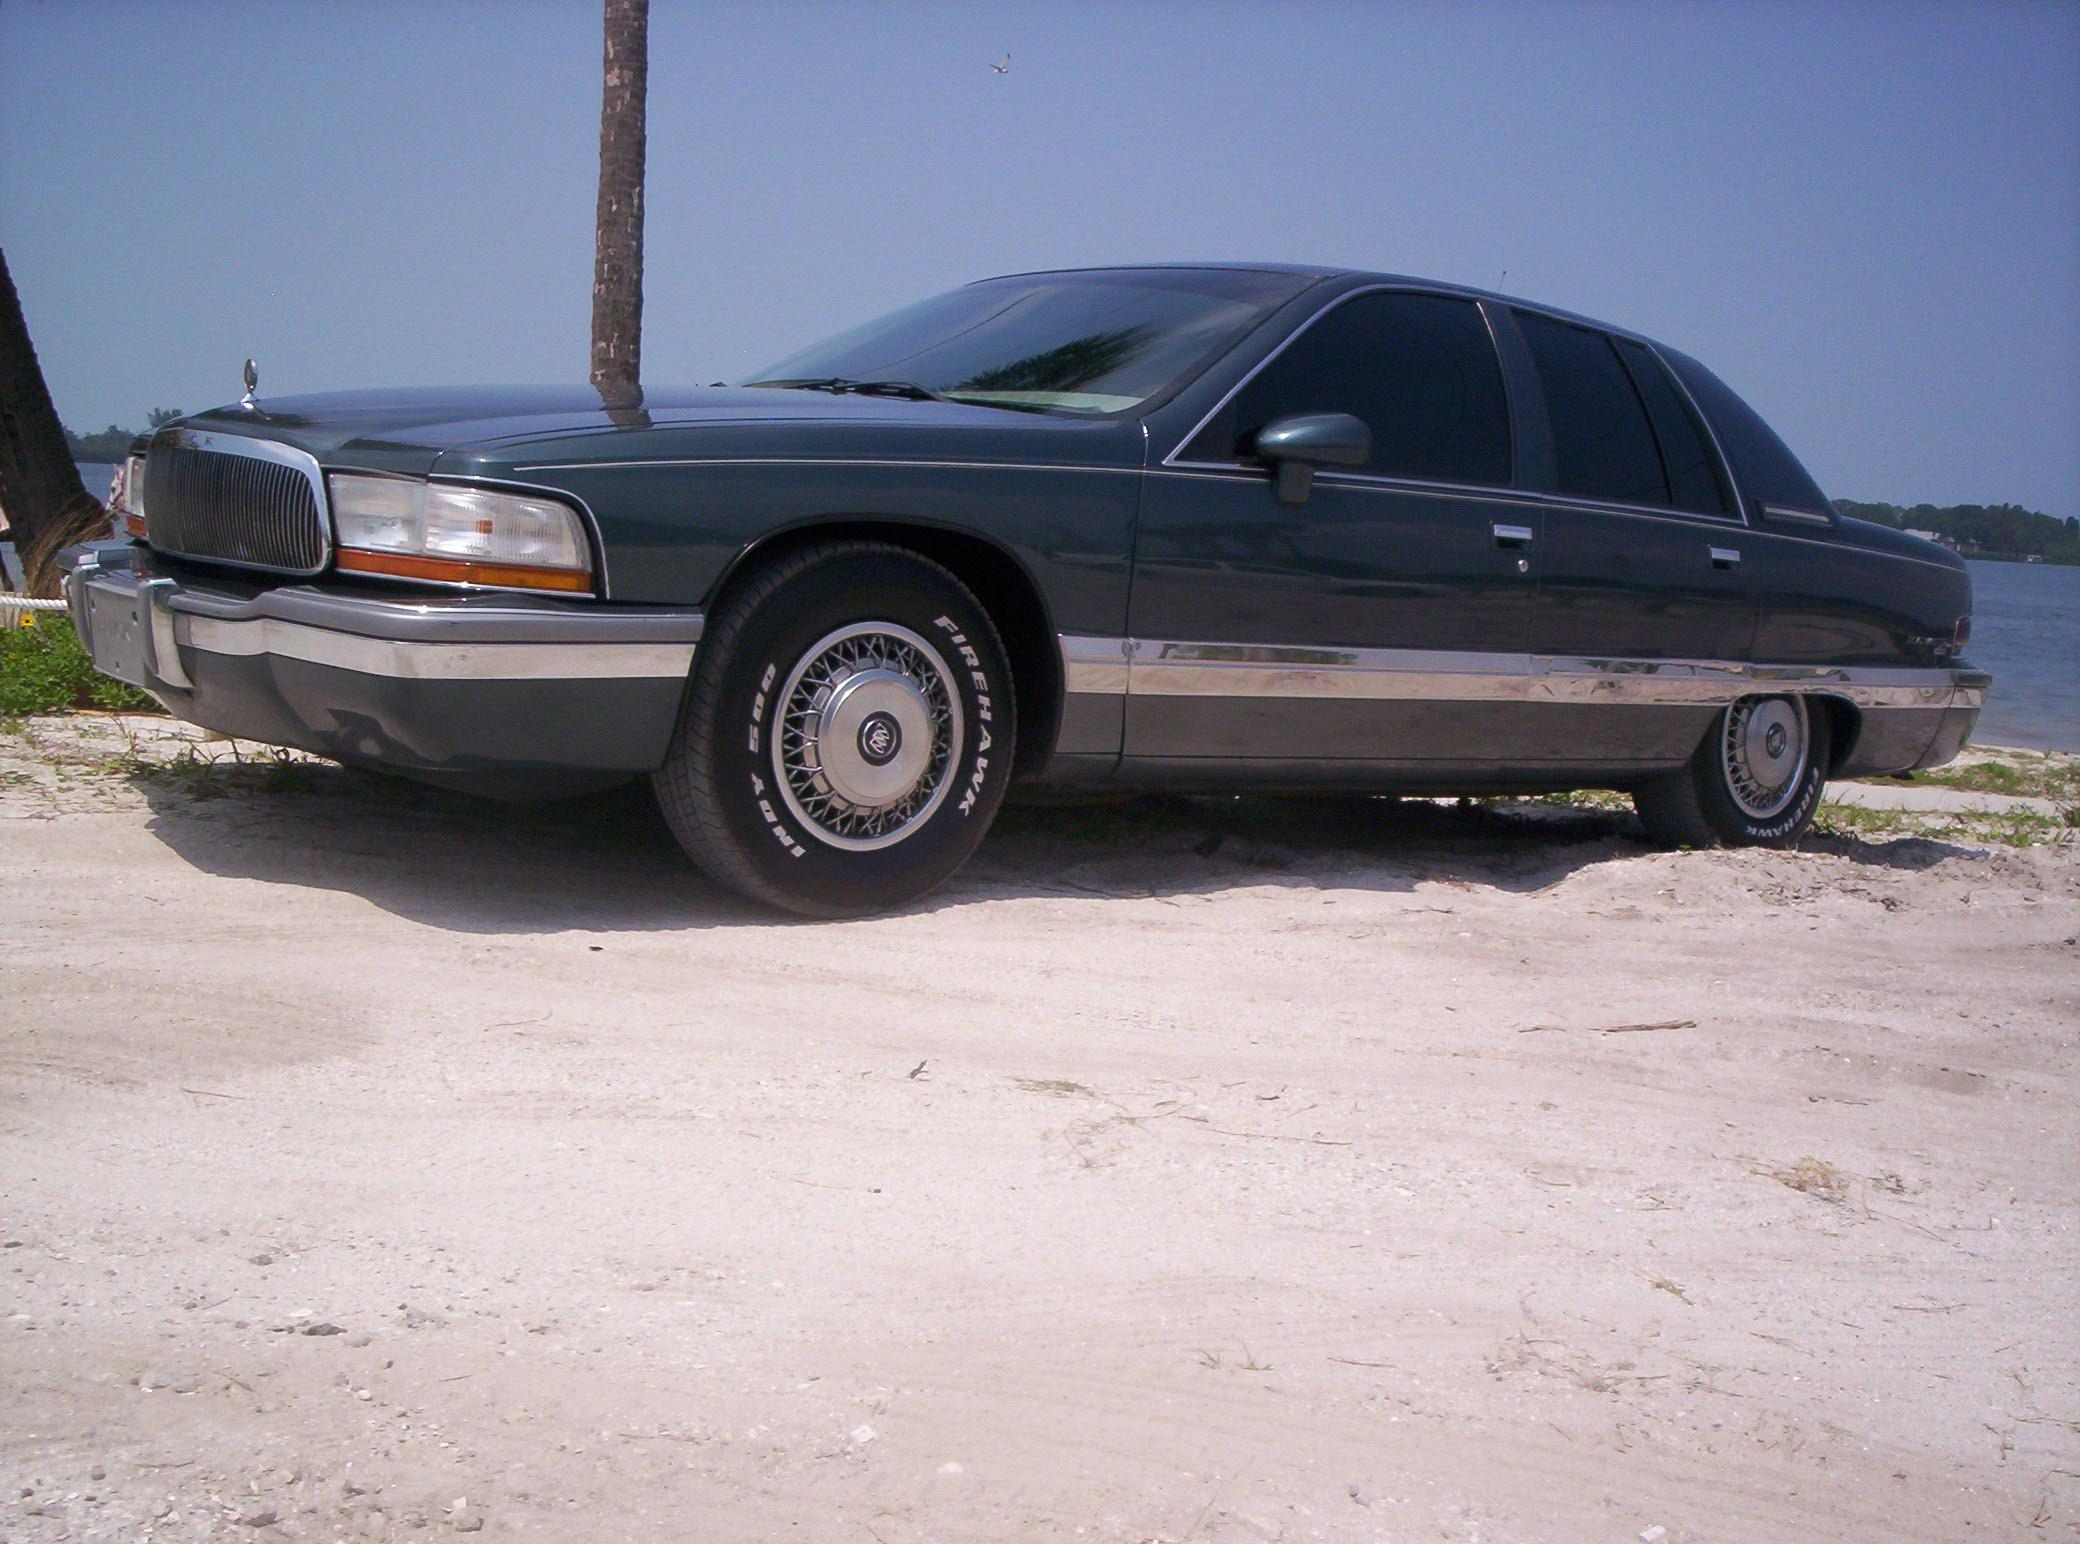 94roadylt1 1994 Buick Roadmaster Specs Photos Modification Info At Roadmasters Auto Wire Harness 33161230001 Original